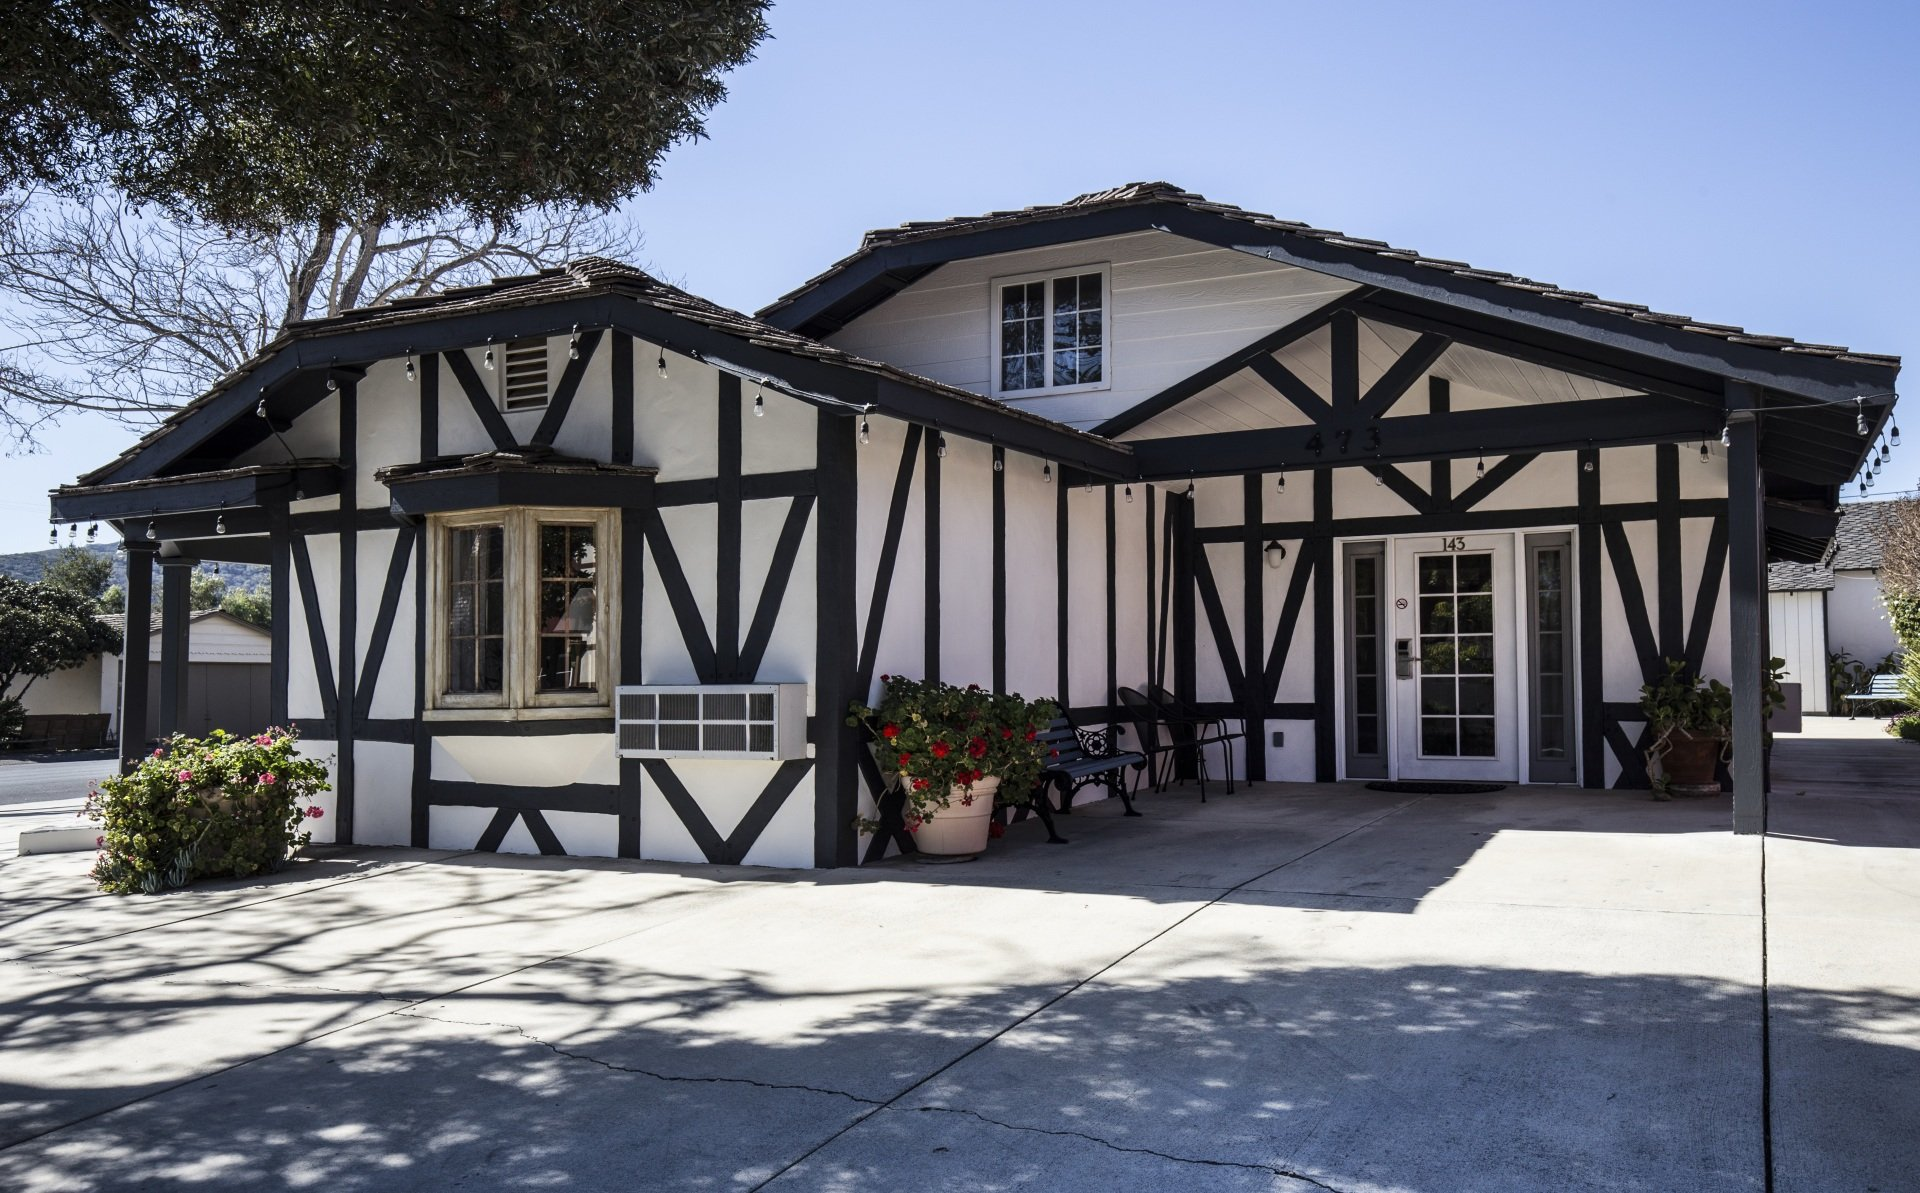 Best Bed And Breakfast In Solvang